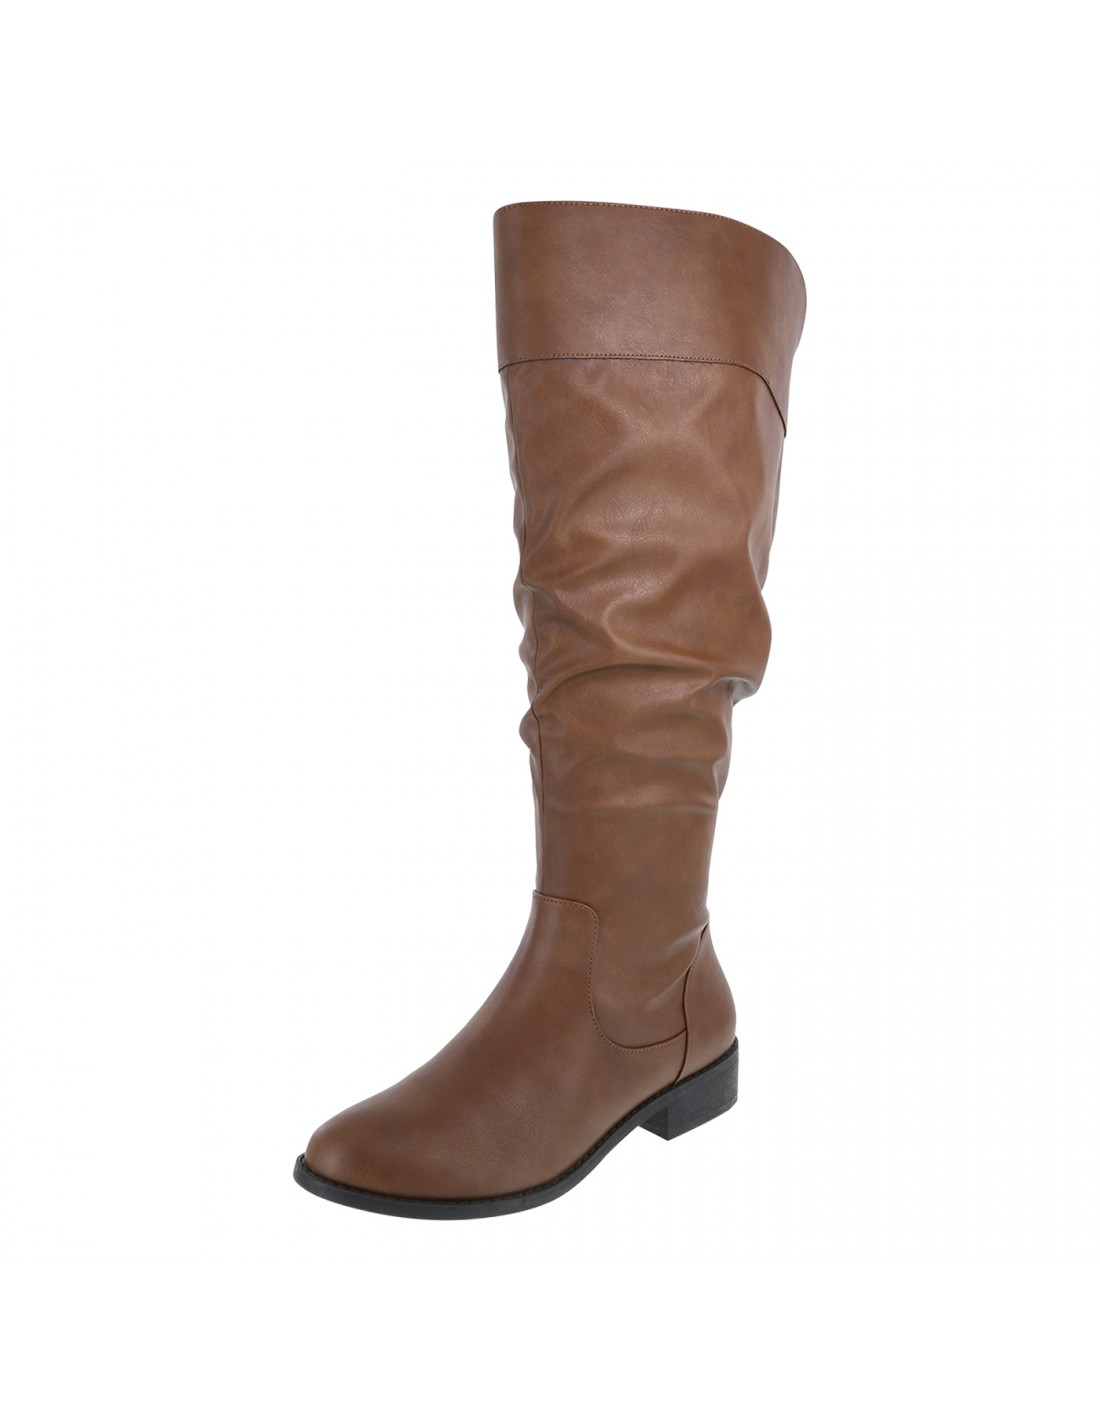 9bd866df574 Women s Tina Tall Slouch Boots. On sale!